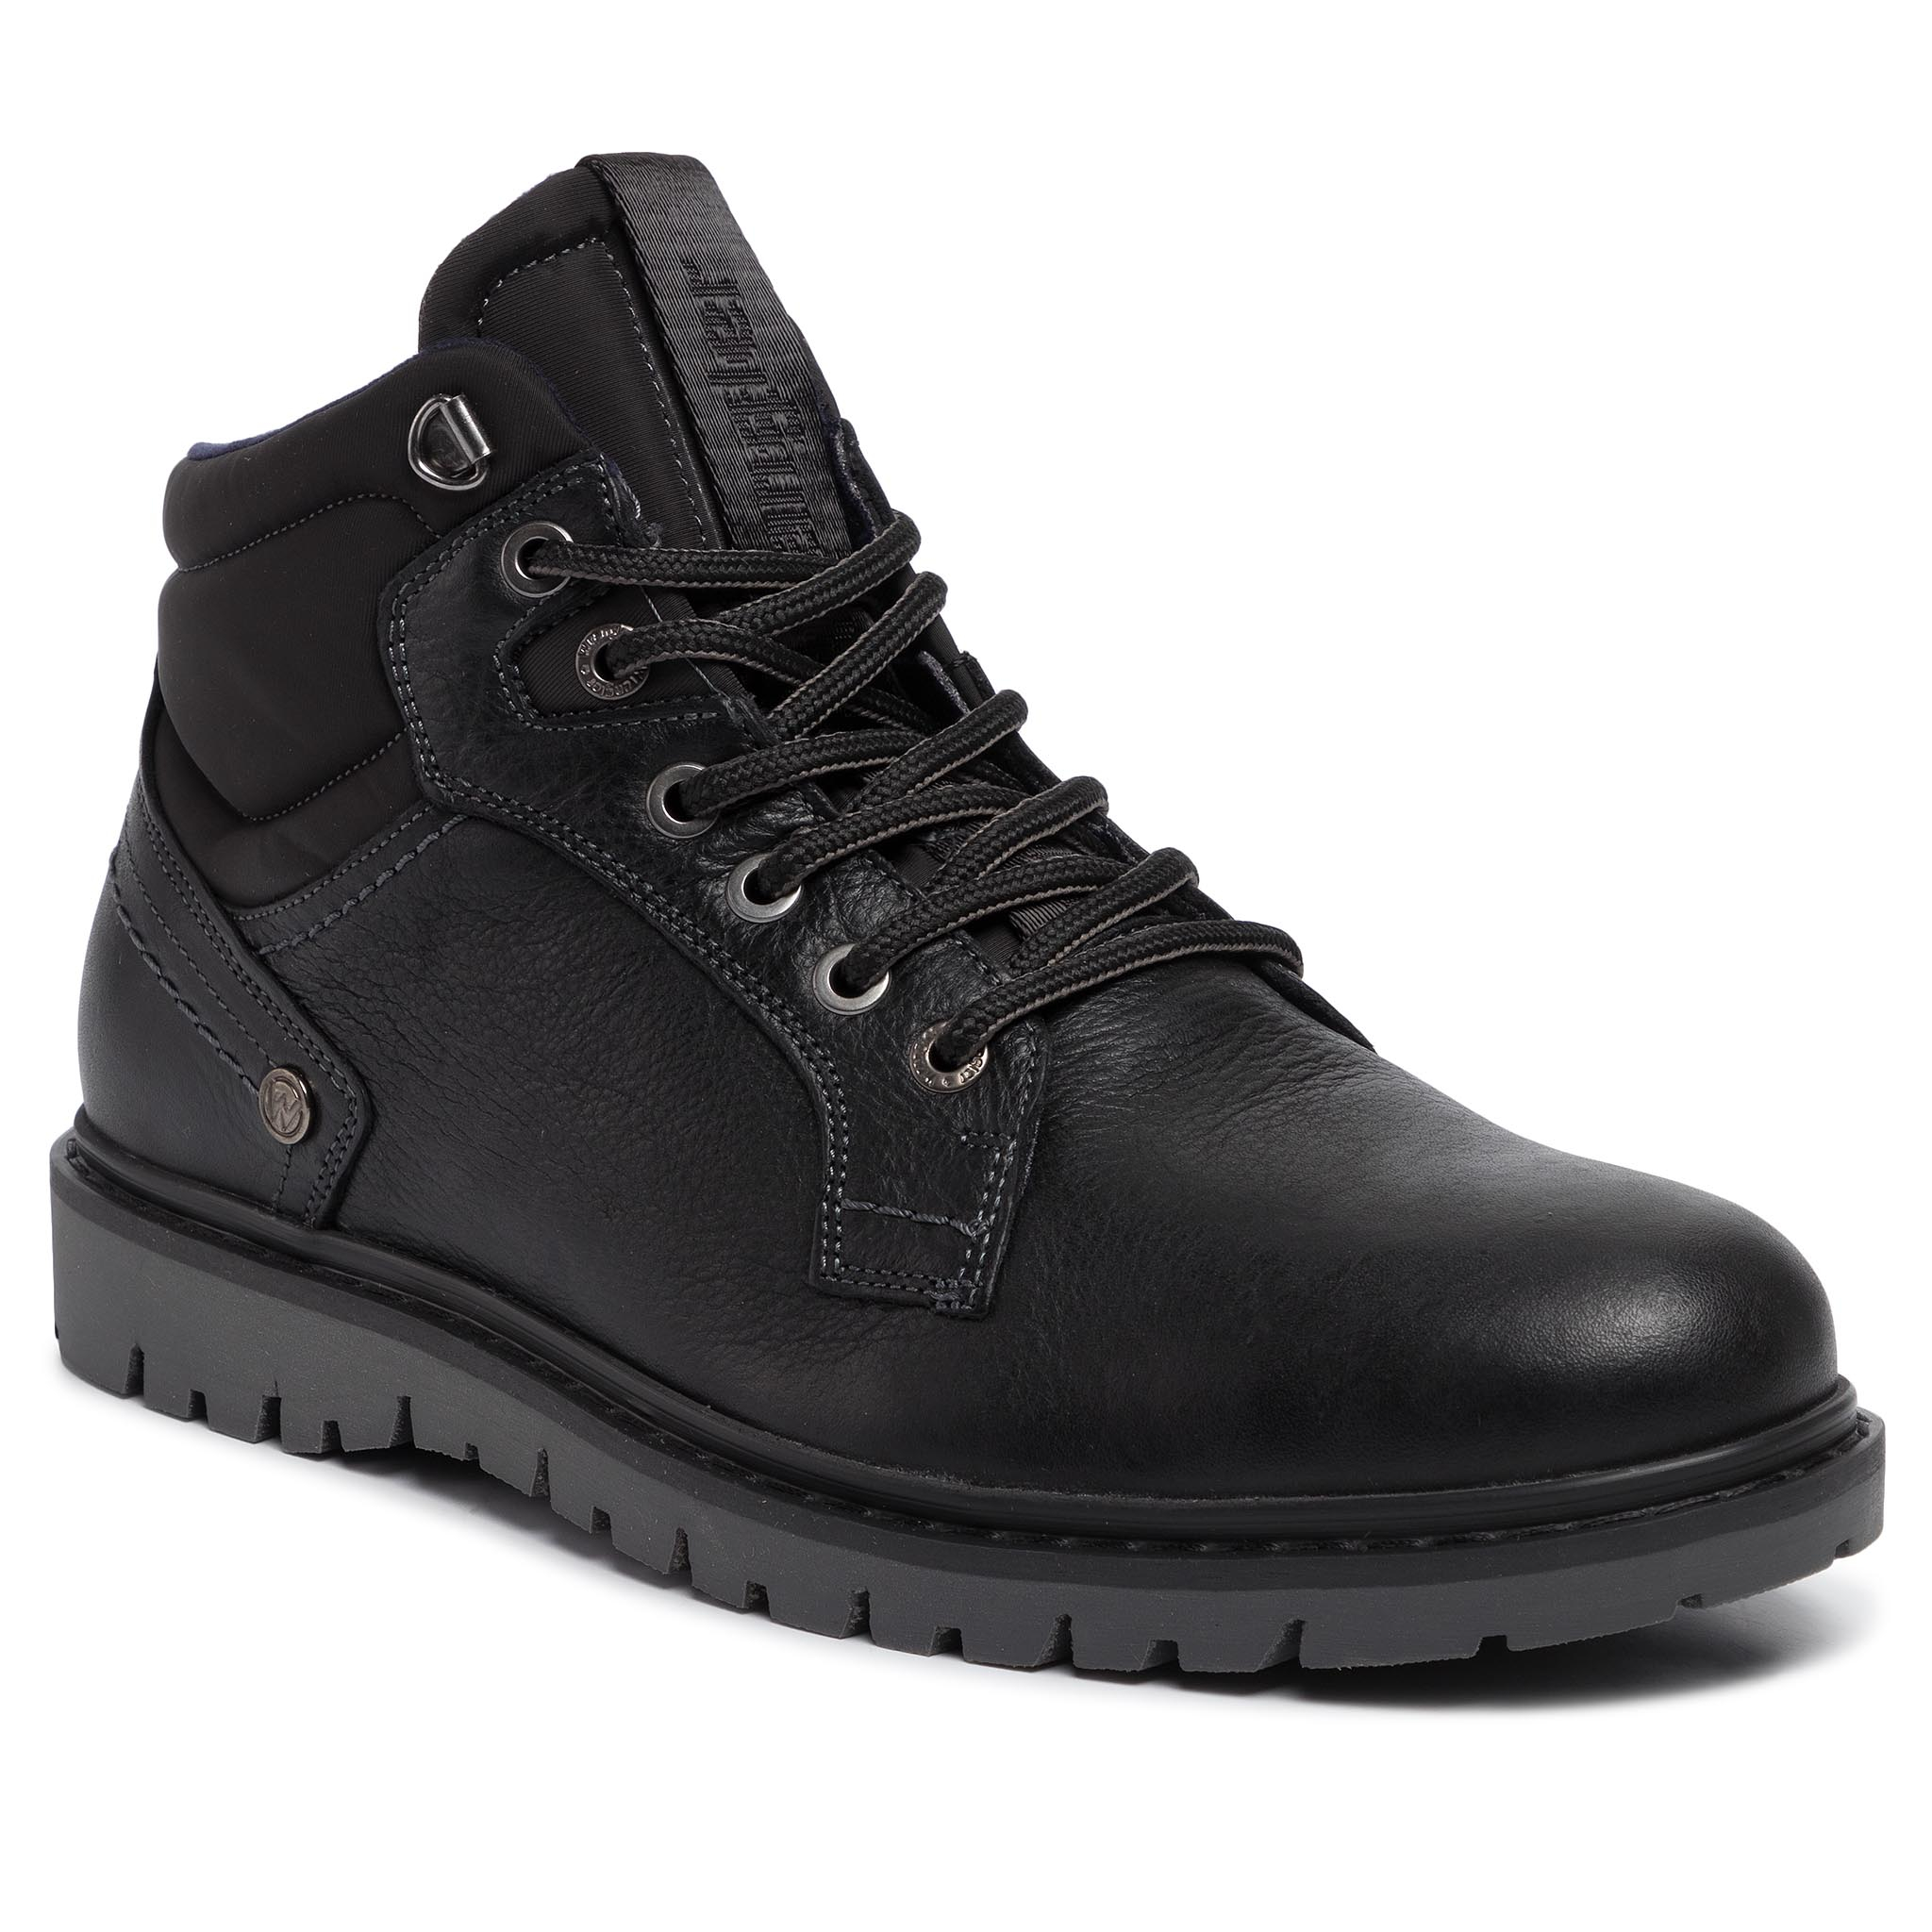 Ghete Wrangler - Miwouk Mid S Wm92037s Black 62 imagine